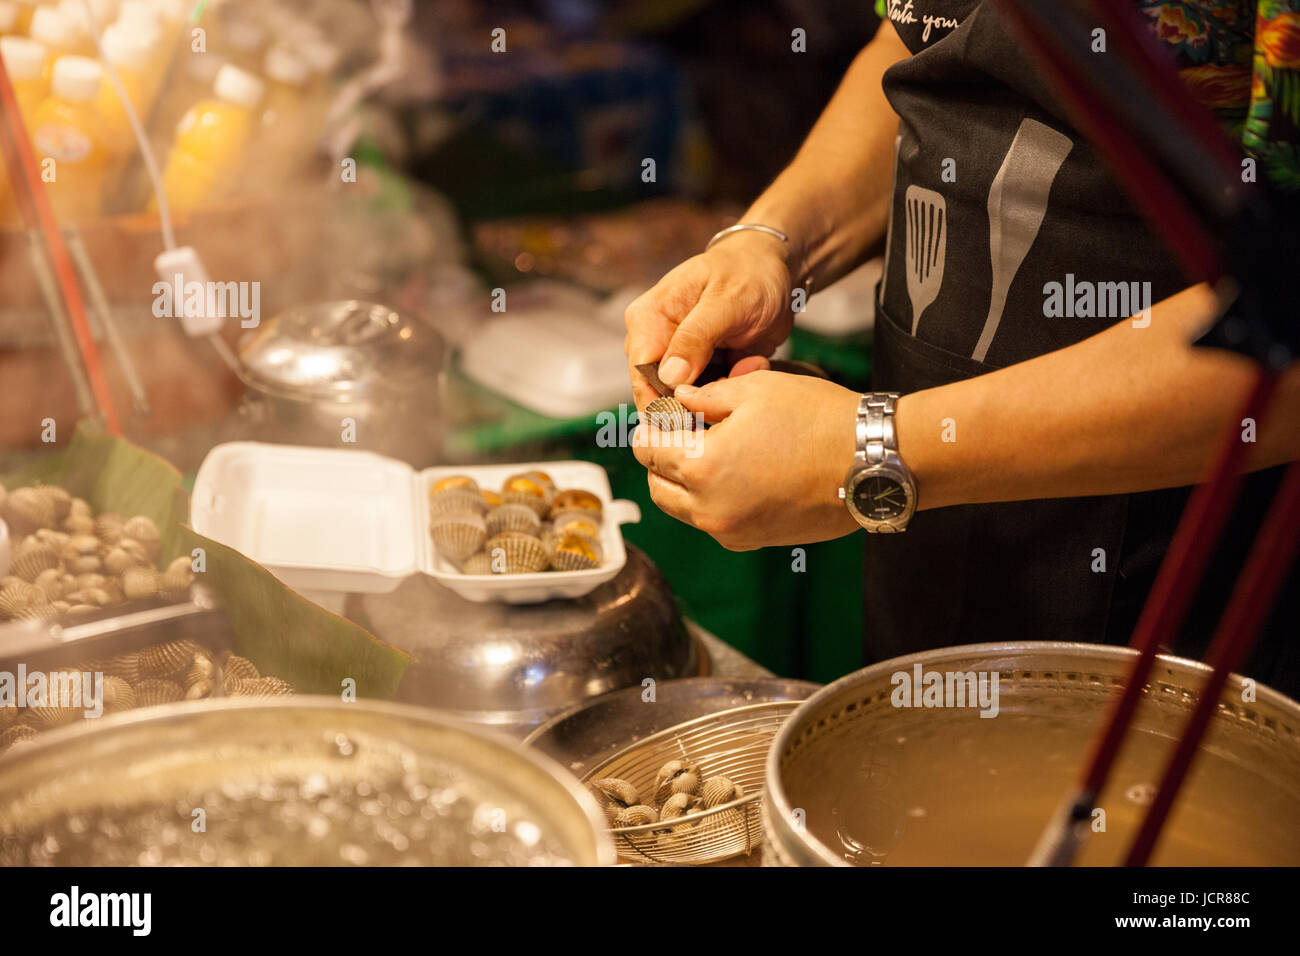 CHIANG MAI, THAILAND - AUGUST 27: Man prepare clams for sale at the Sunday Market (Walking Street) on August 27, - Stock Image